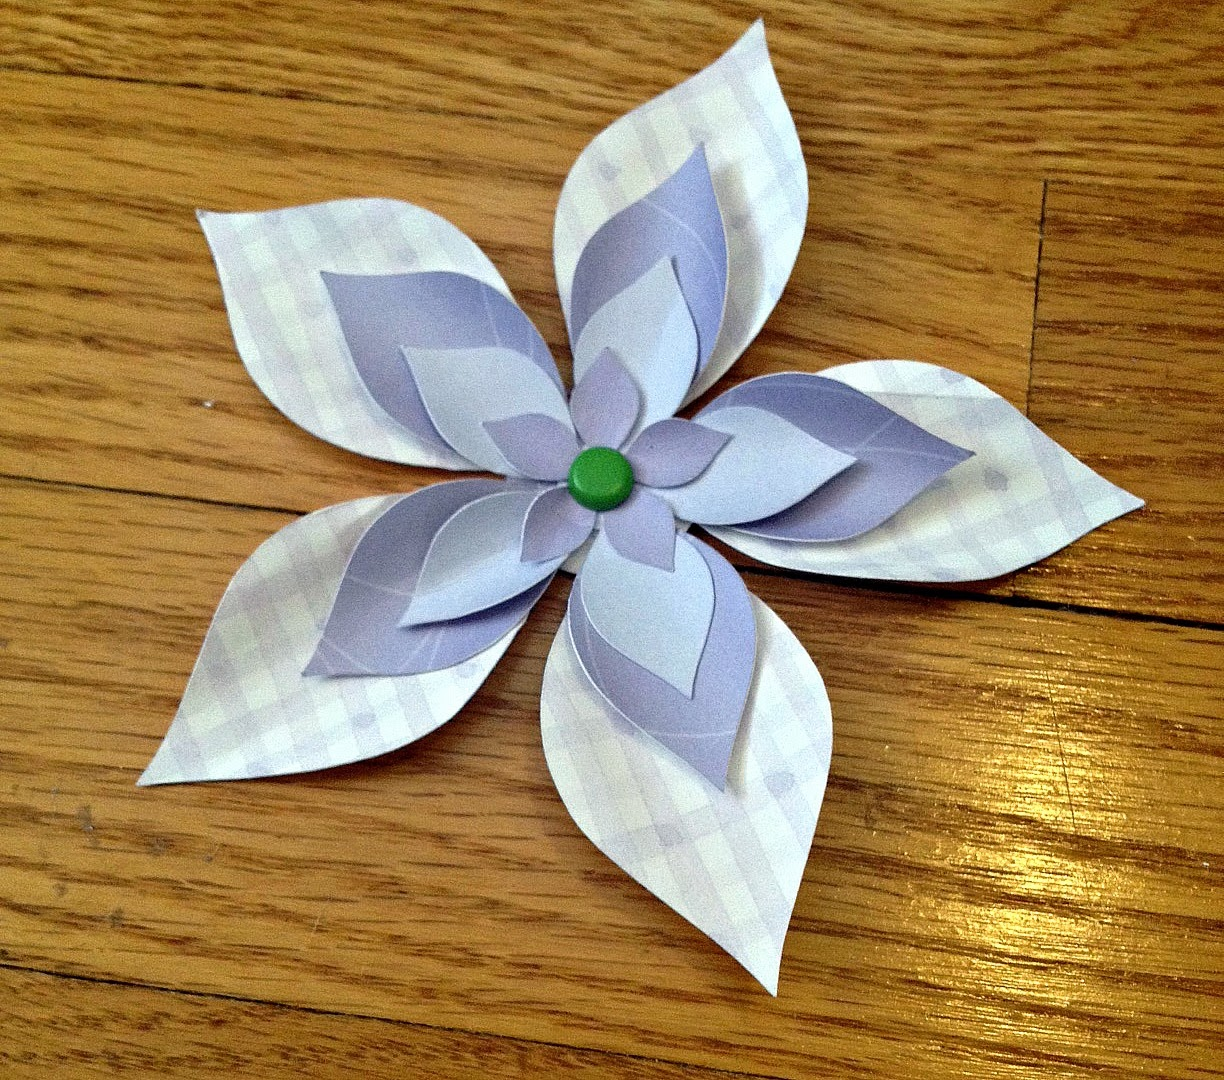 How To Make 3d Paper Flowers The Easy Free Way Silhouette